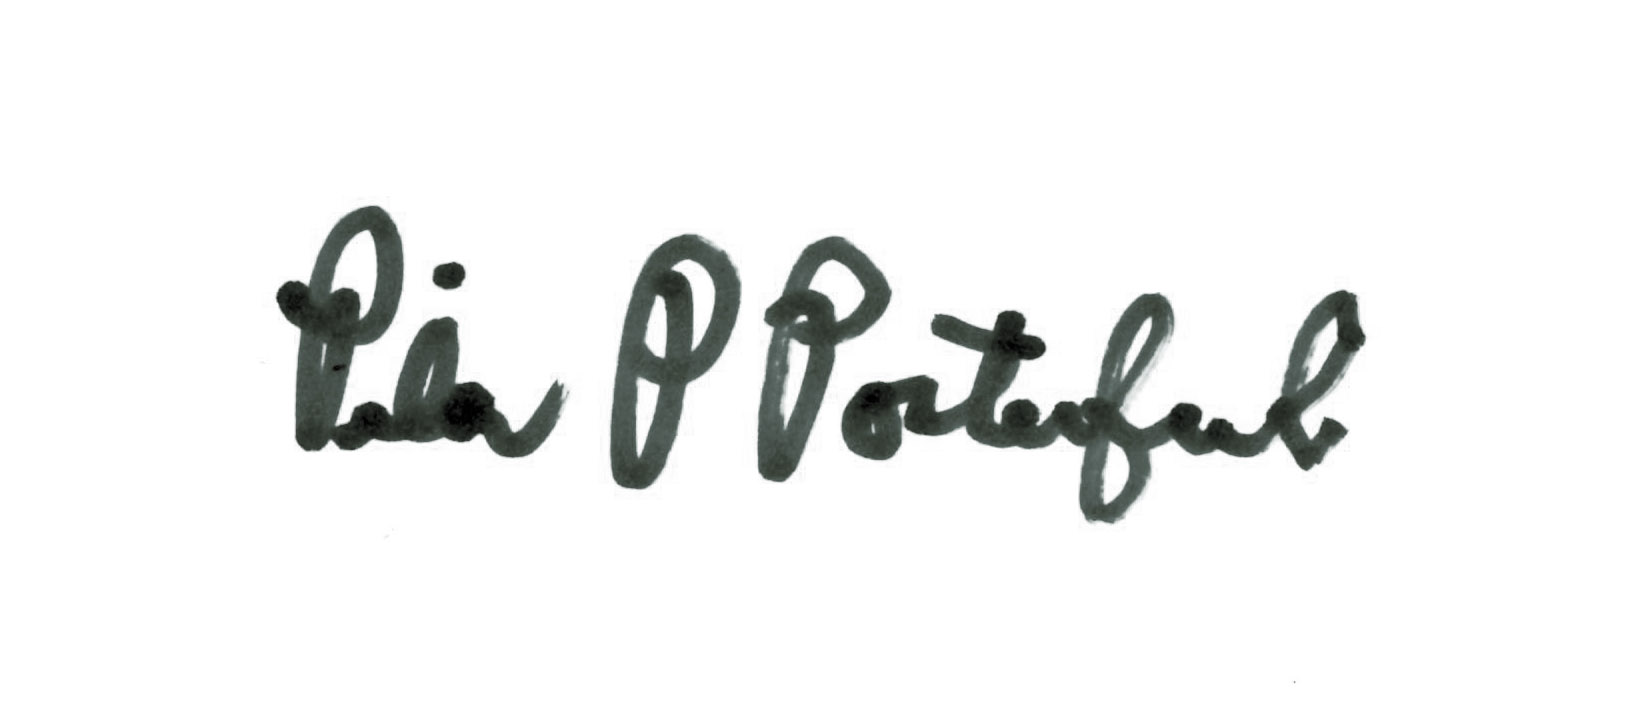 Pilar Porterfield Signature